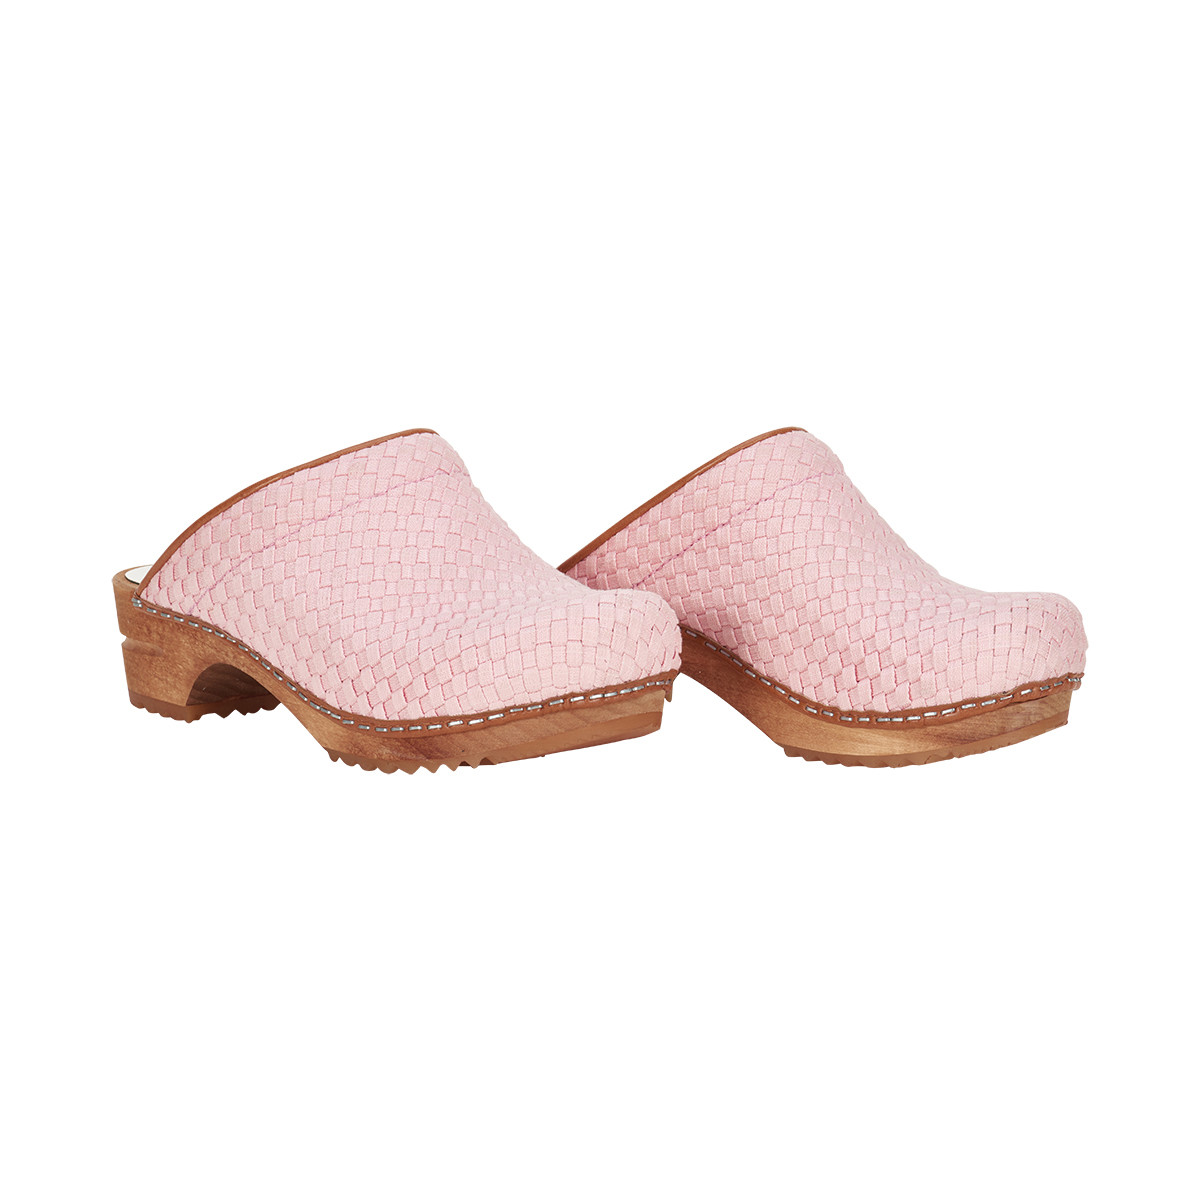 SANITA DEBRA CLOGS 455959 33